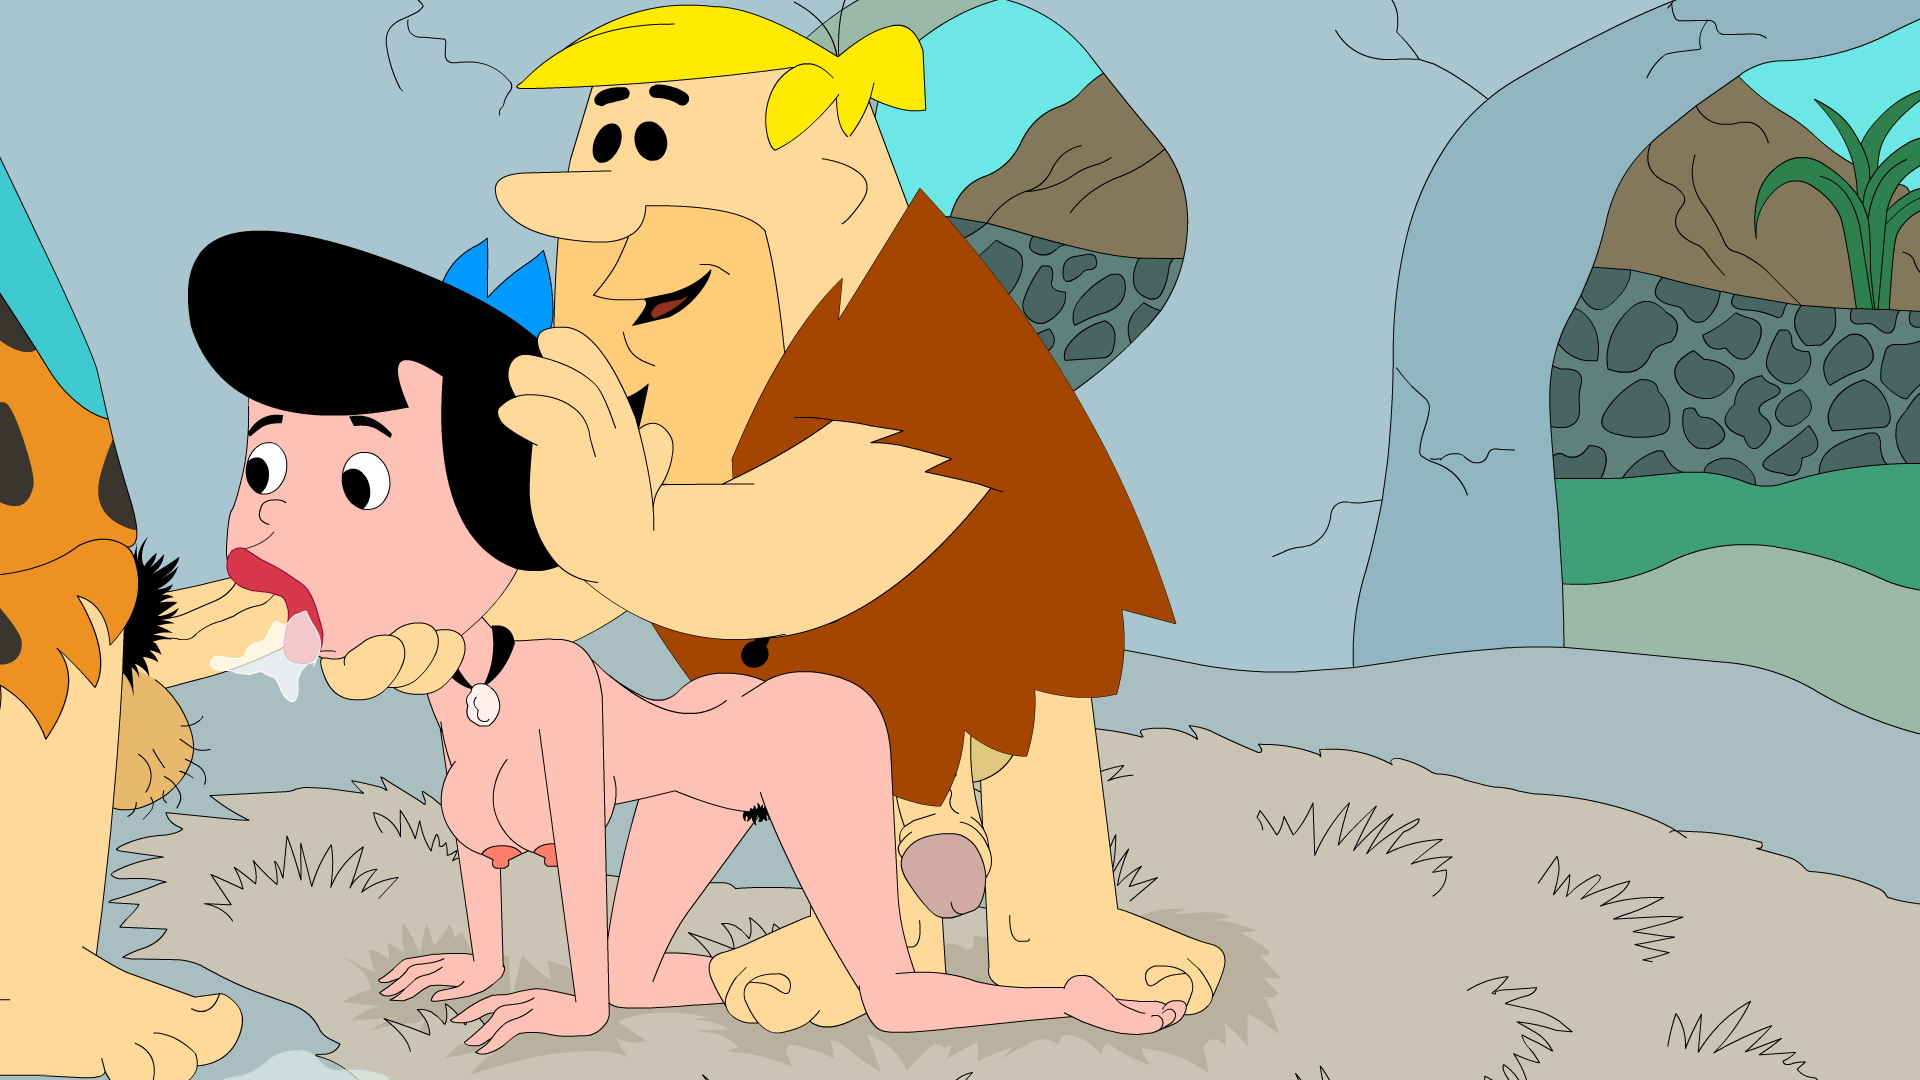 Cartoon sex image full hd hentia images